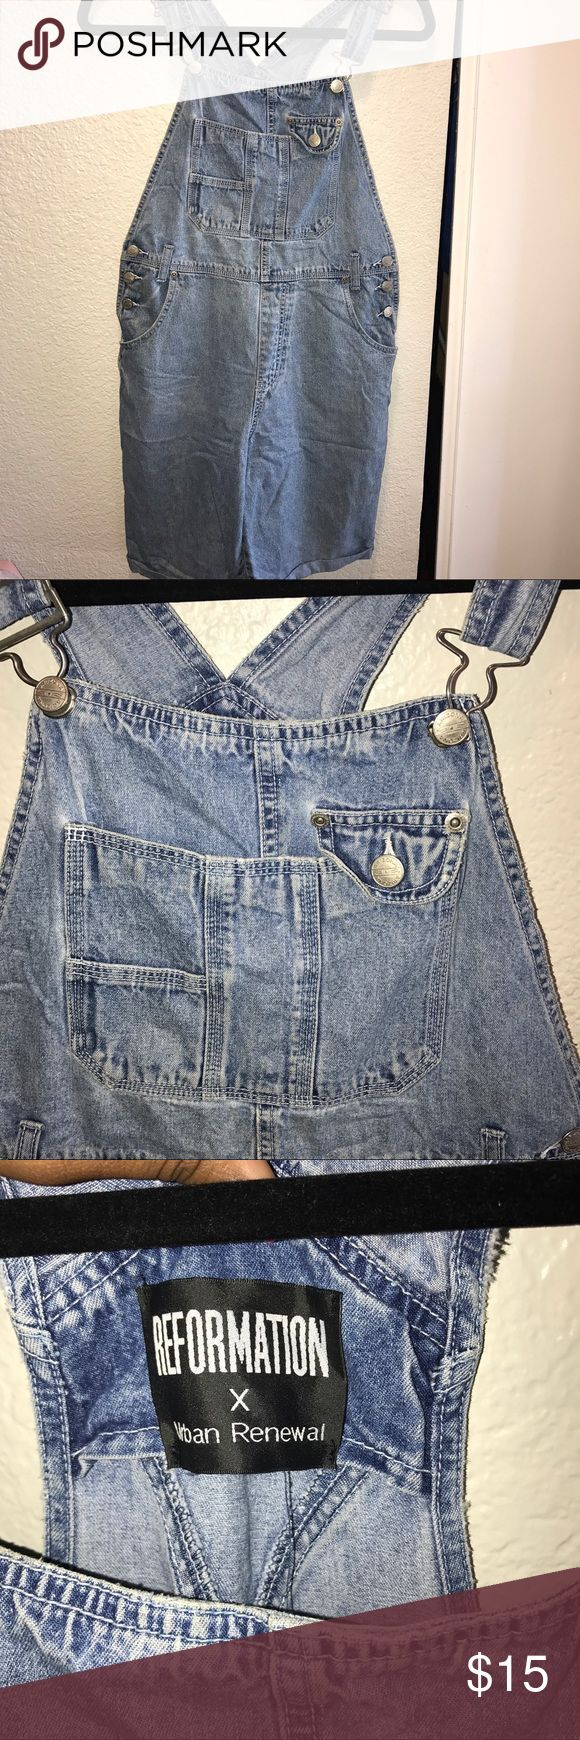 Overalls Short overalls From the Urban outfitters outlet in La .. Leather accent pockets (they are not real pockets)  Super Cute 😍 No stretch  ✖️ If you love denim ... these are for you !  Don't like the price ... make me an offer ! Urban Outfitters Other